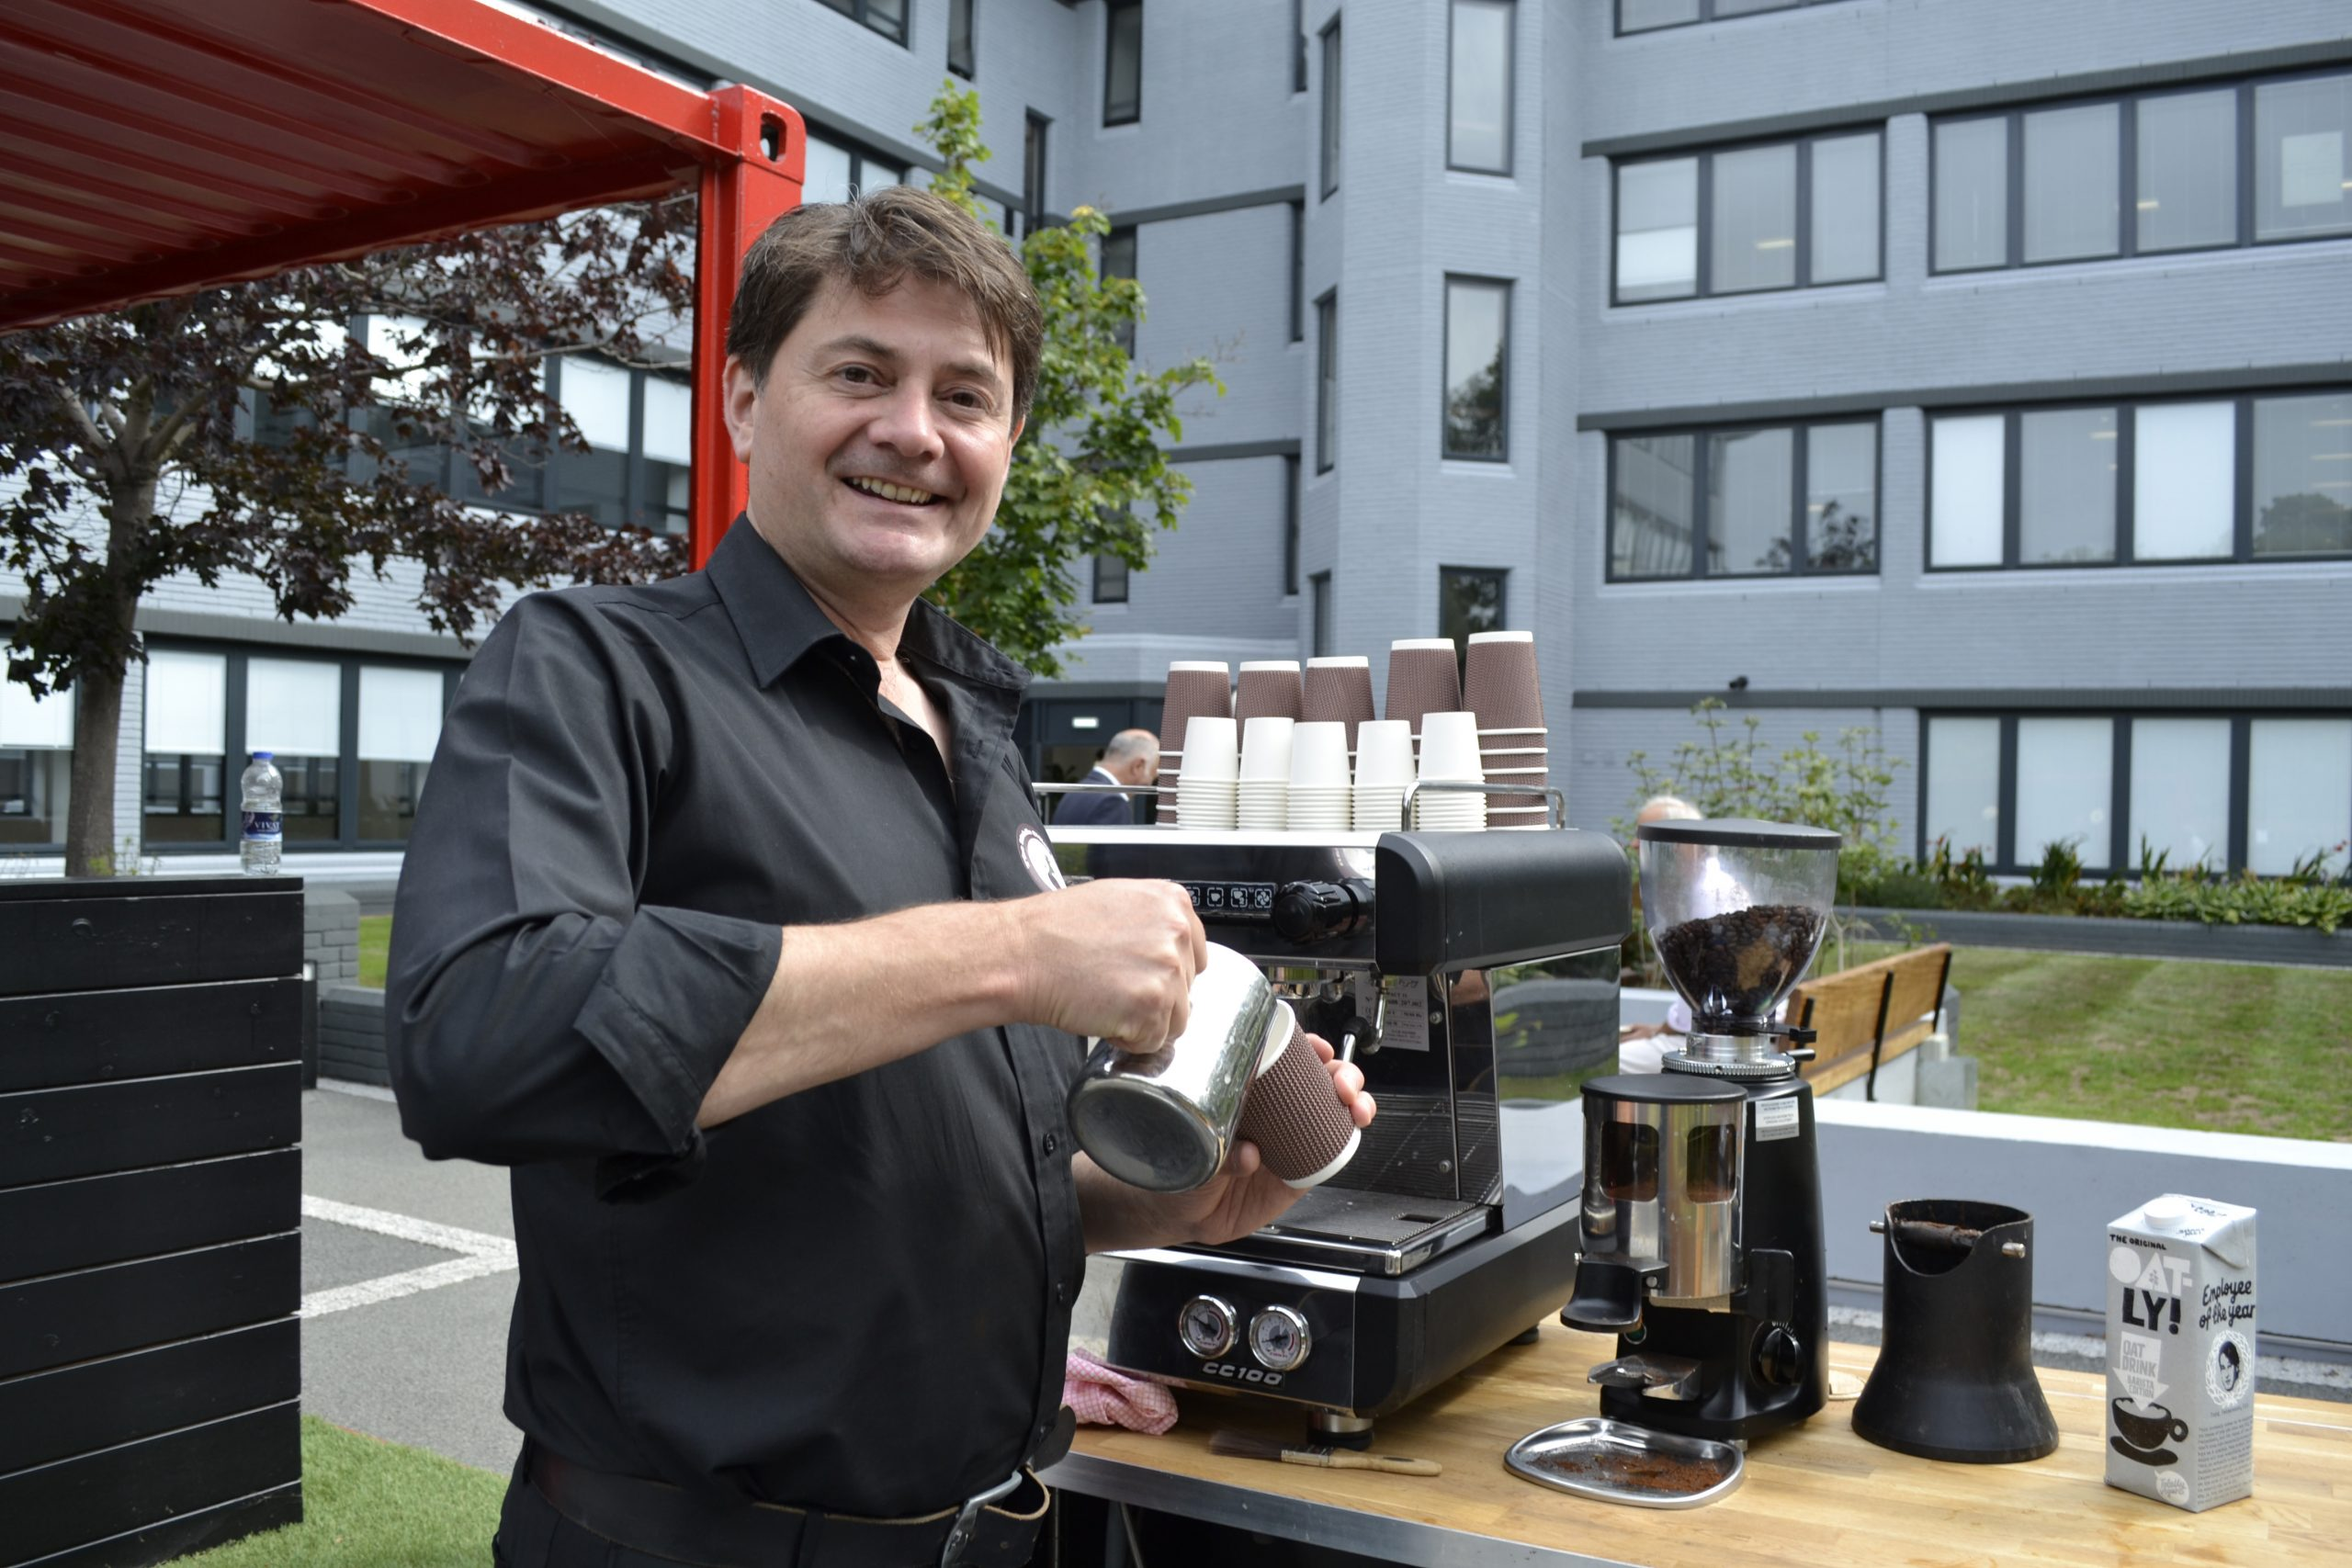 mobile coffee van bar hire professional barista service